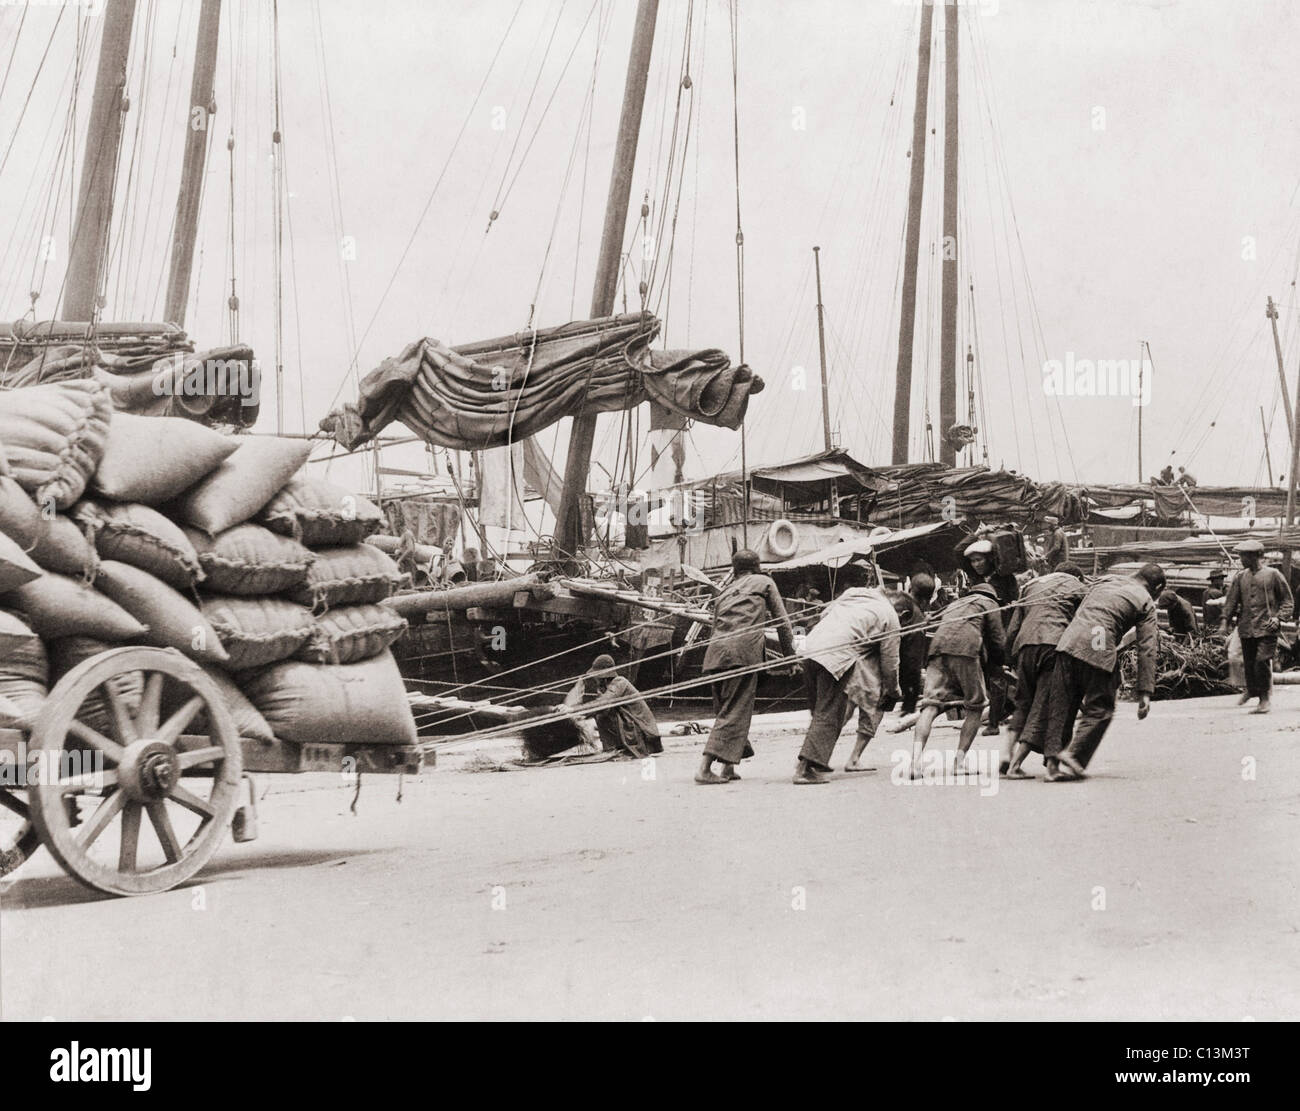 Gang of five Chinese dock workers lean hard on ropes to haul a heavy wagon load of sacks on the Hong Kong waterfront. - Stock Image